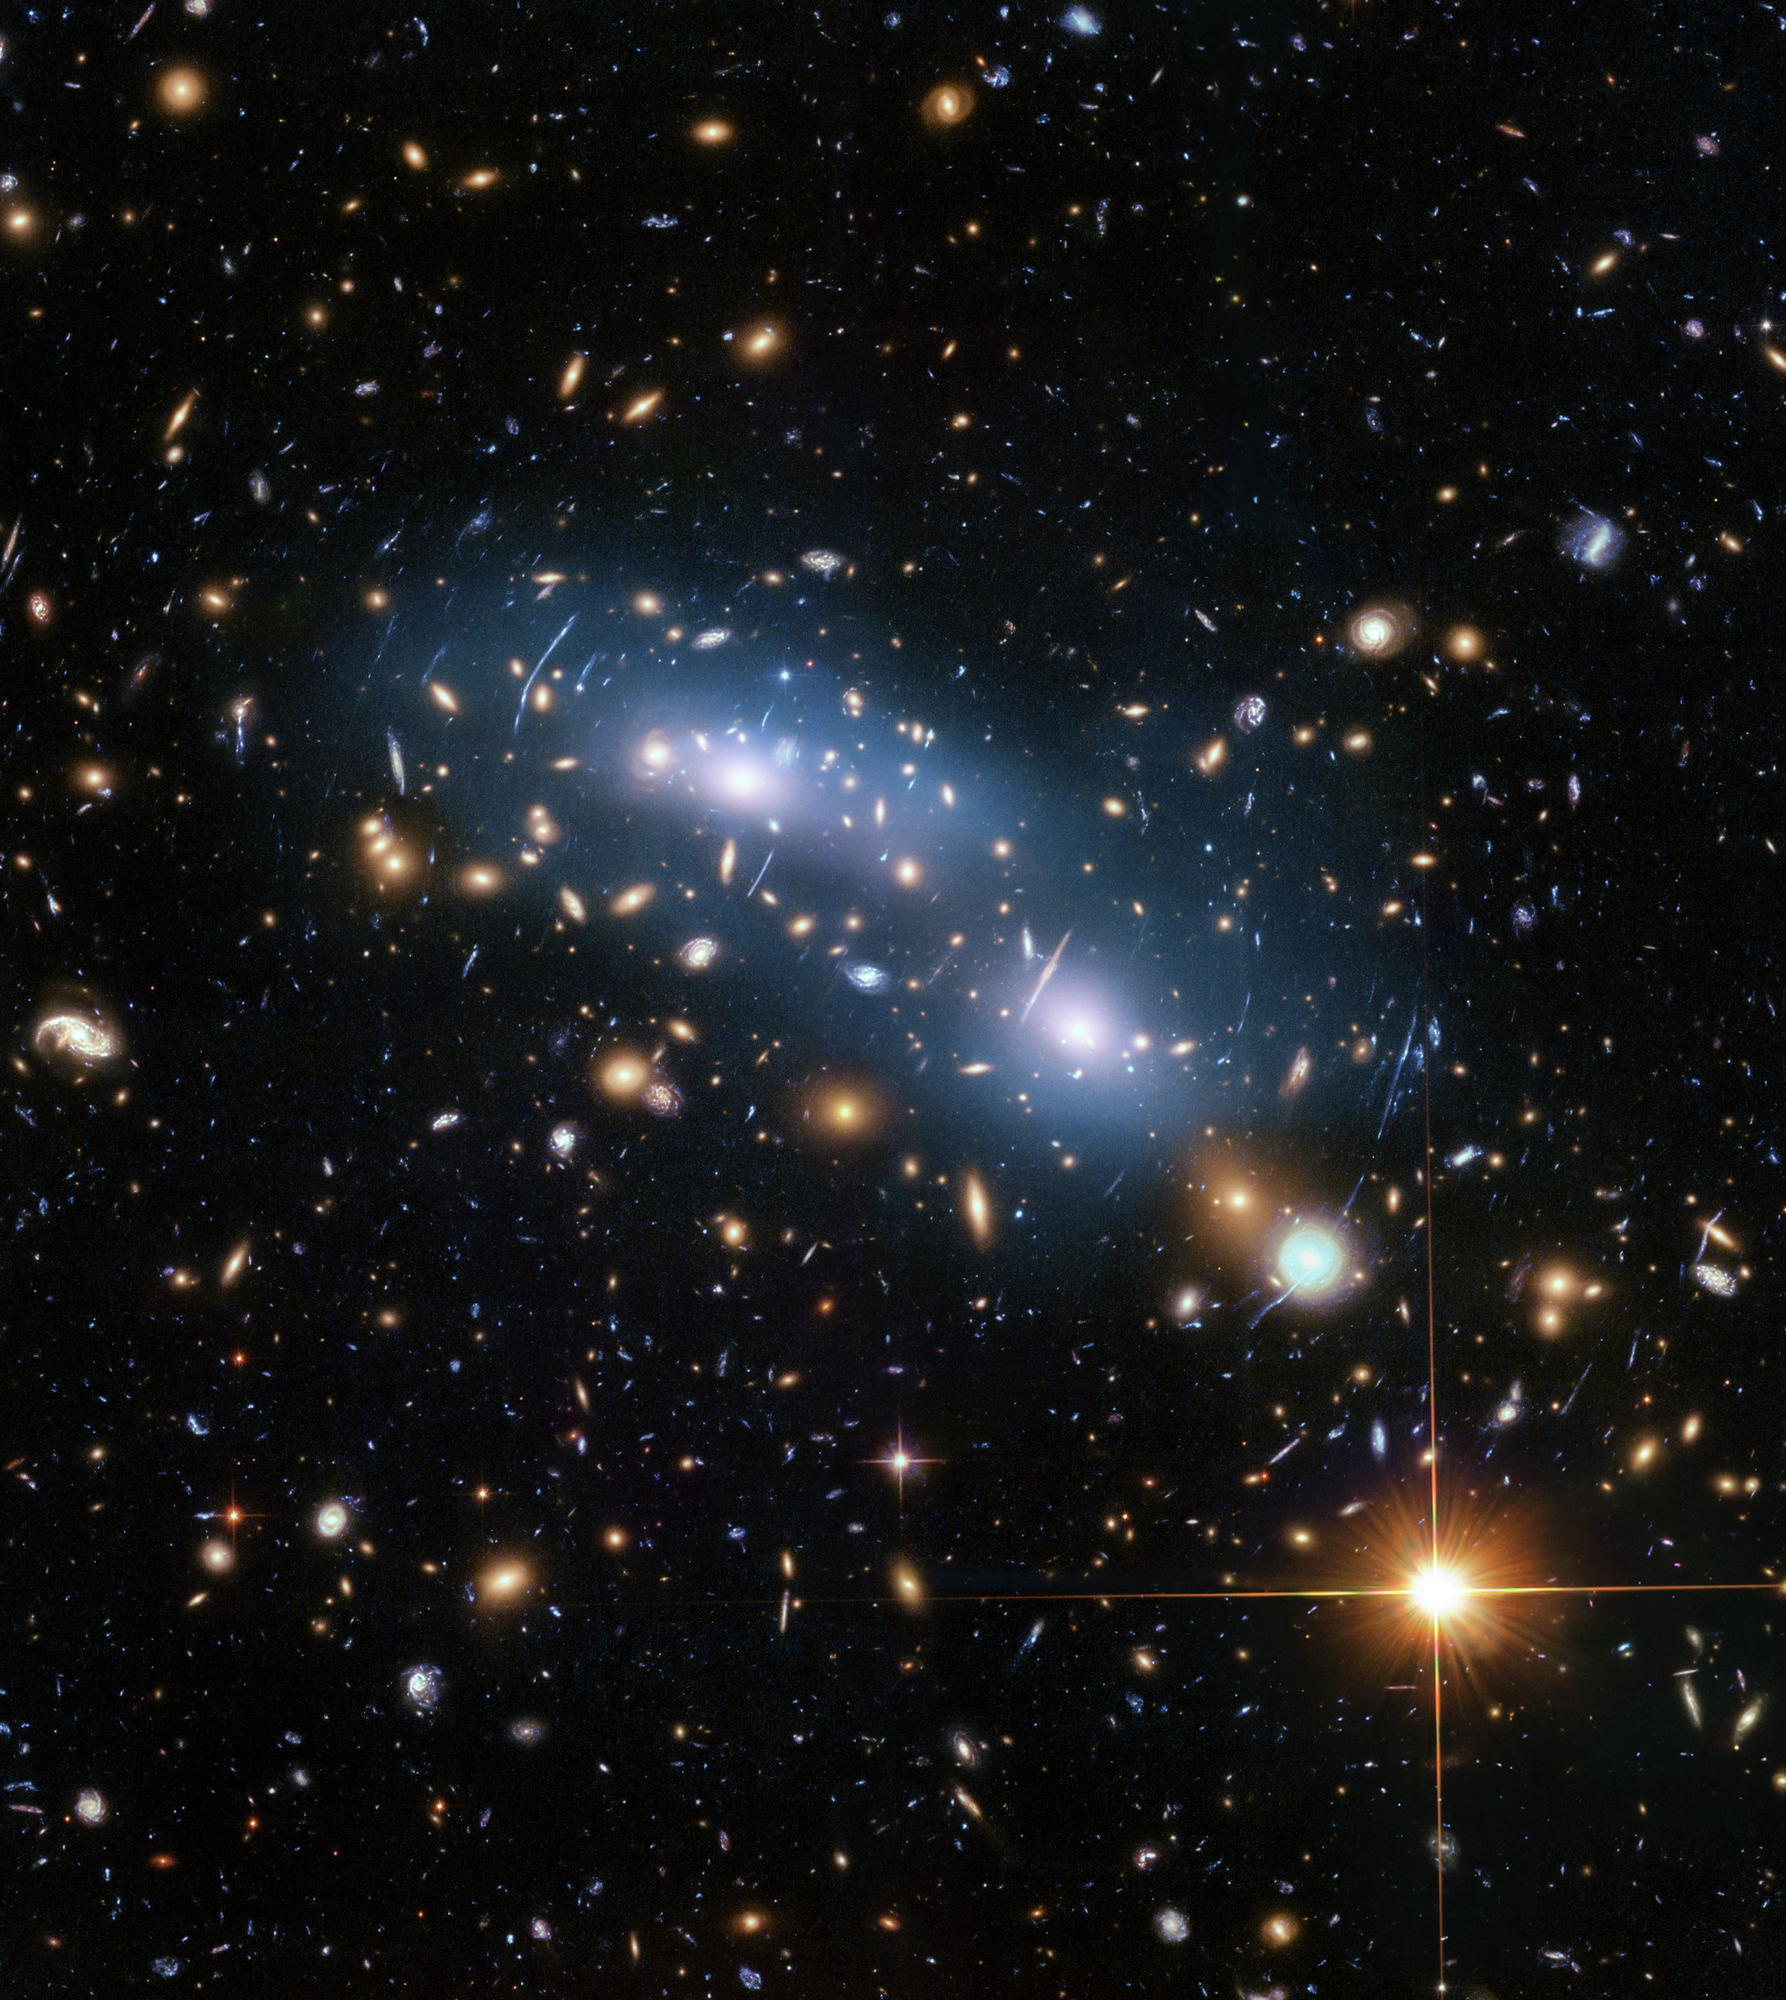 Looking at Stars in the Early Universe